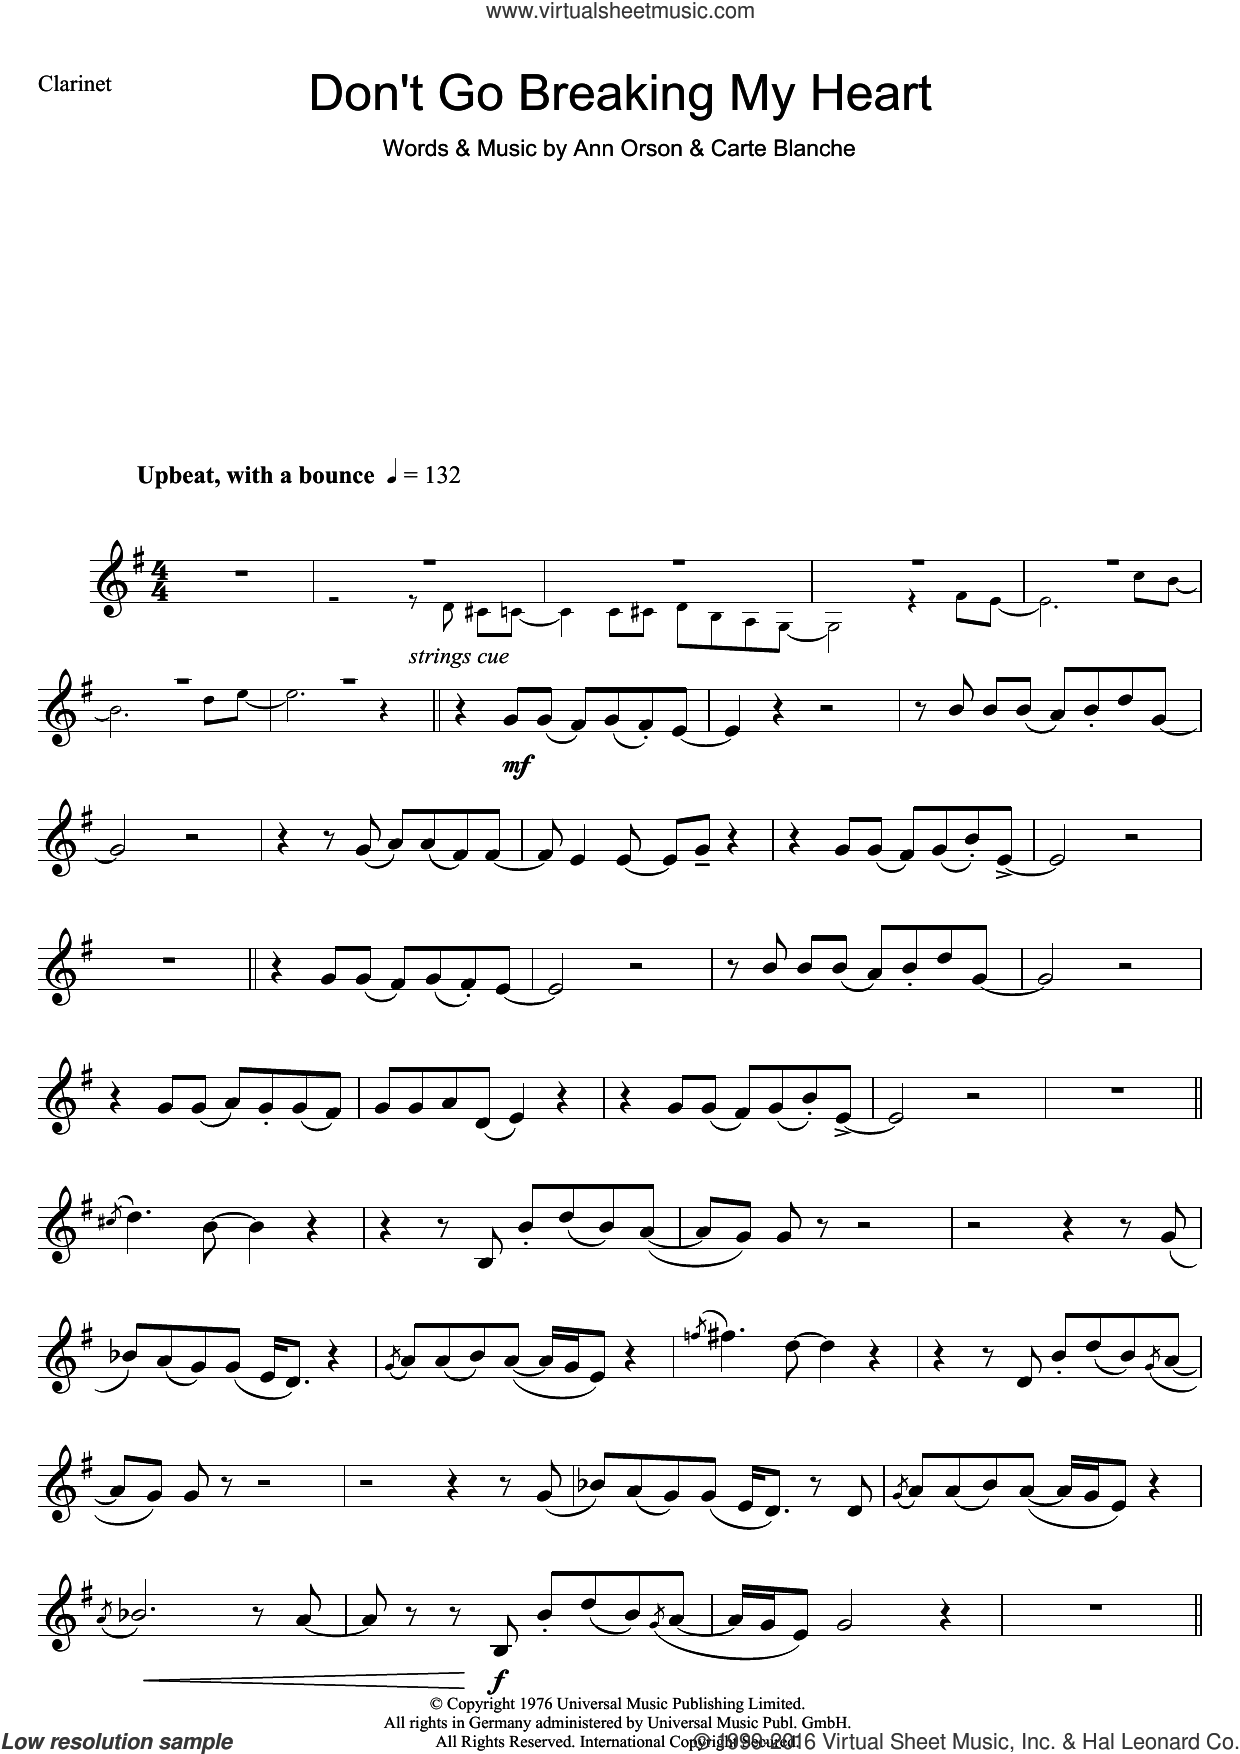 Don't Go Breaking My Heart sheet music for clarinet solo by Carte Blanche